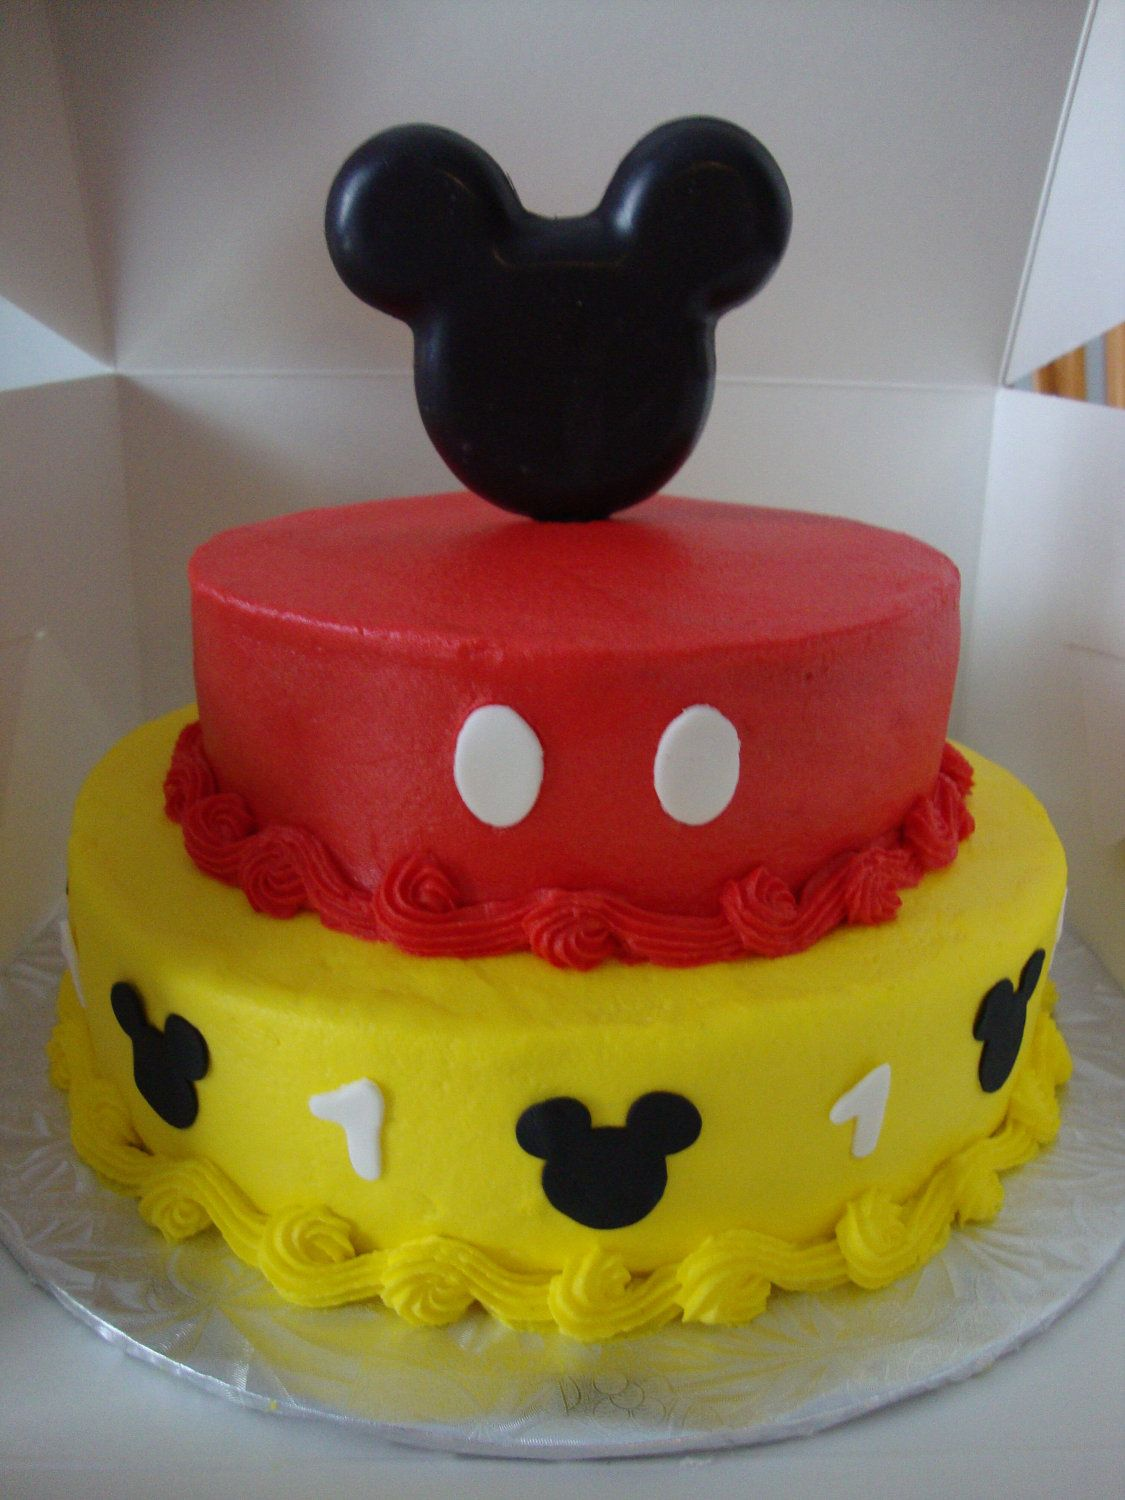 Edible Chocolate Mickey Mouse Ears Cake Topper Kit 12 99 Via